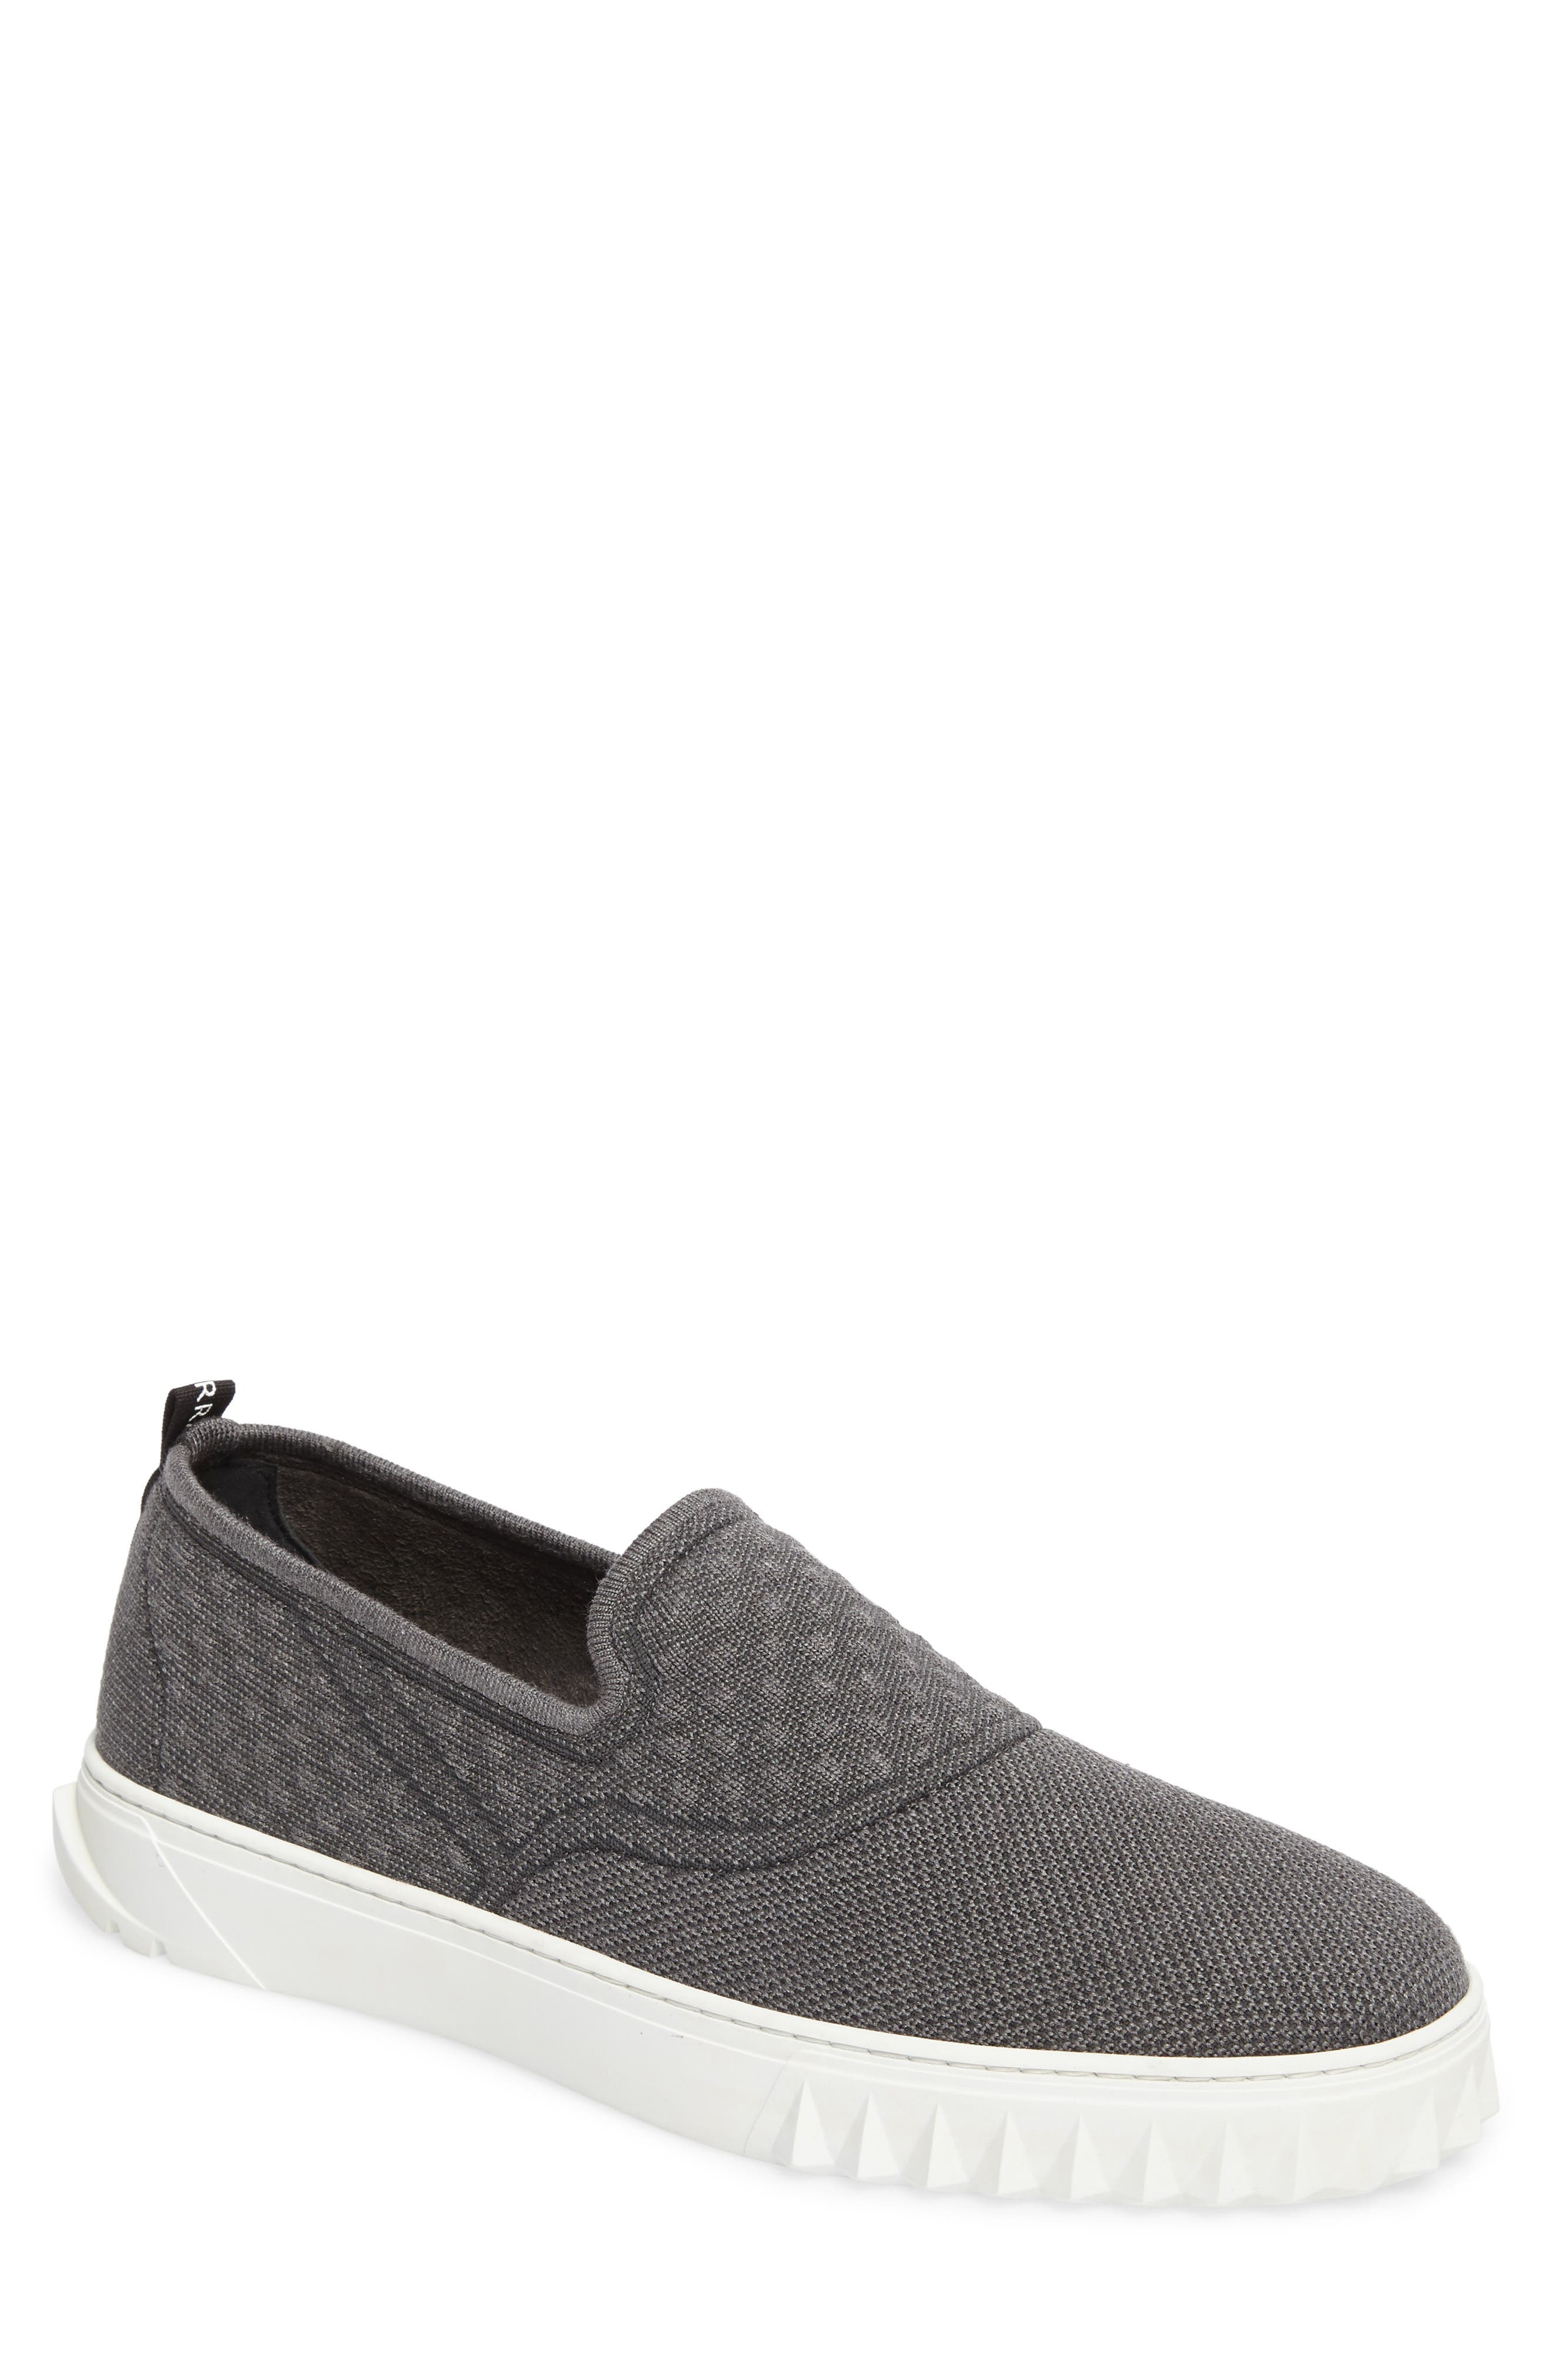 Clay Slip-On Sneaker,                         Main,                         color, 022